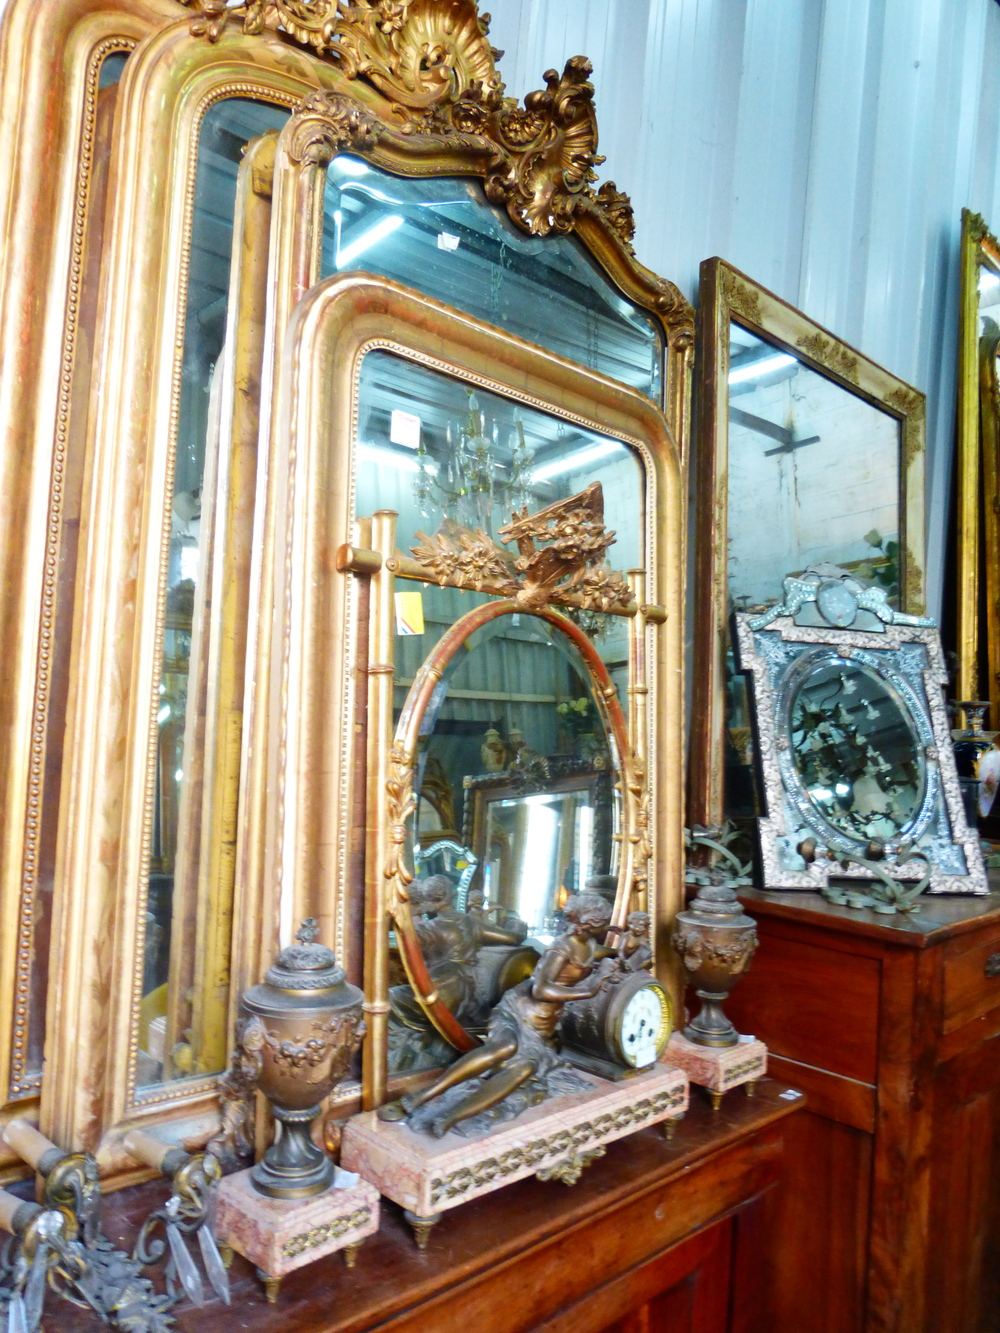 A mere sampling of the sensational mirrors found at our last stop.